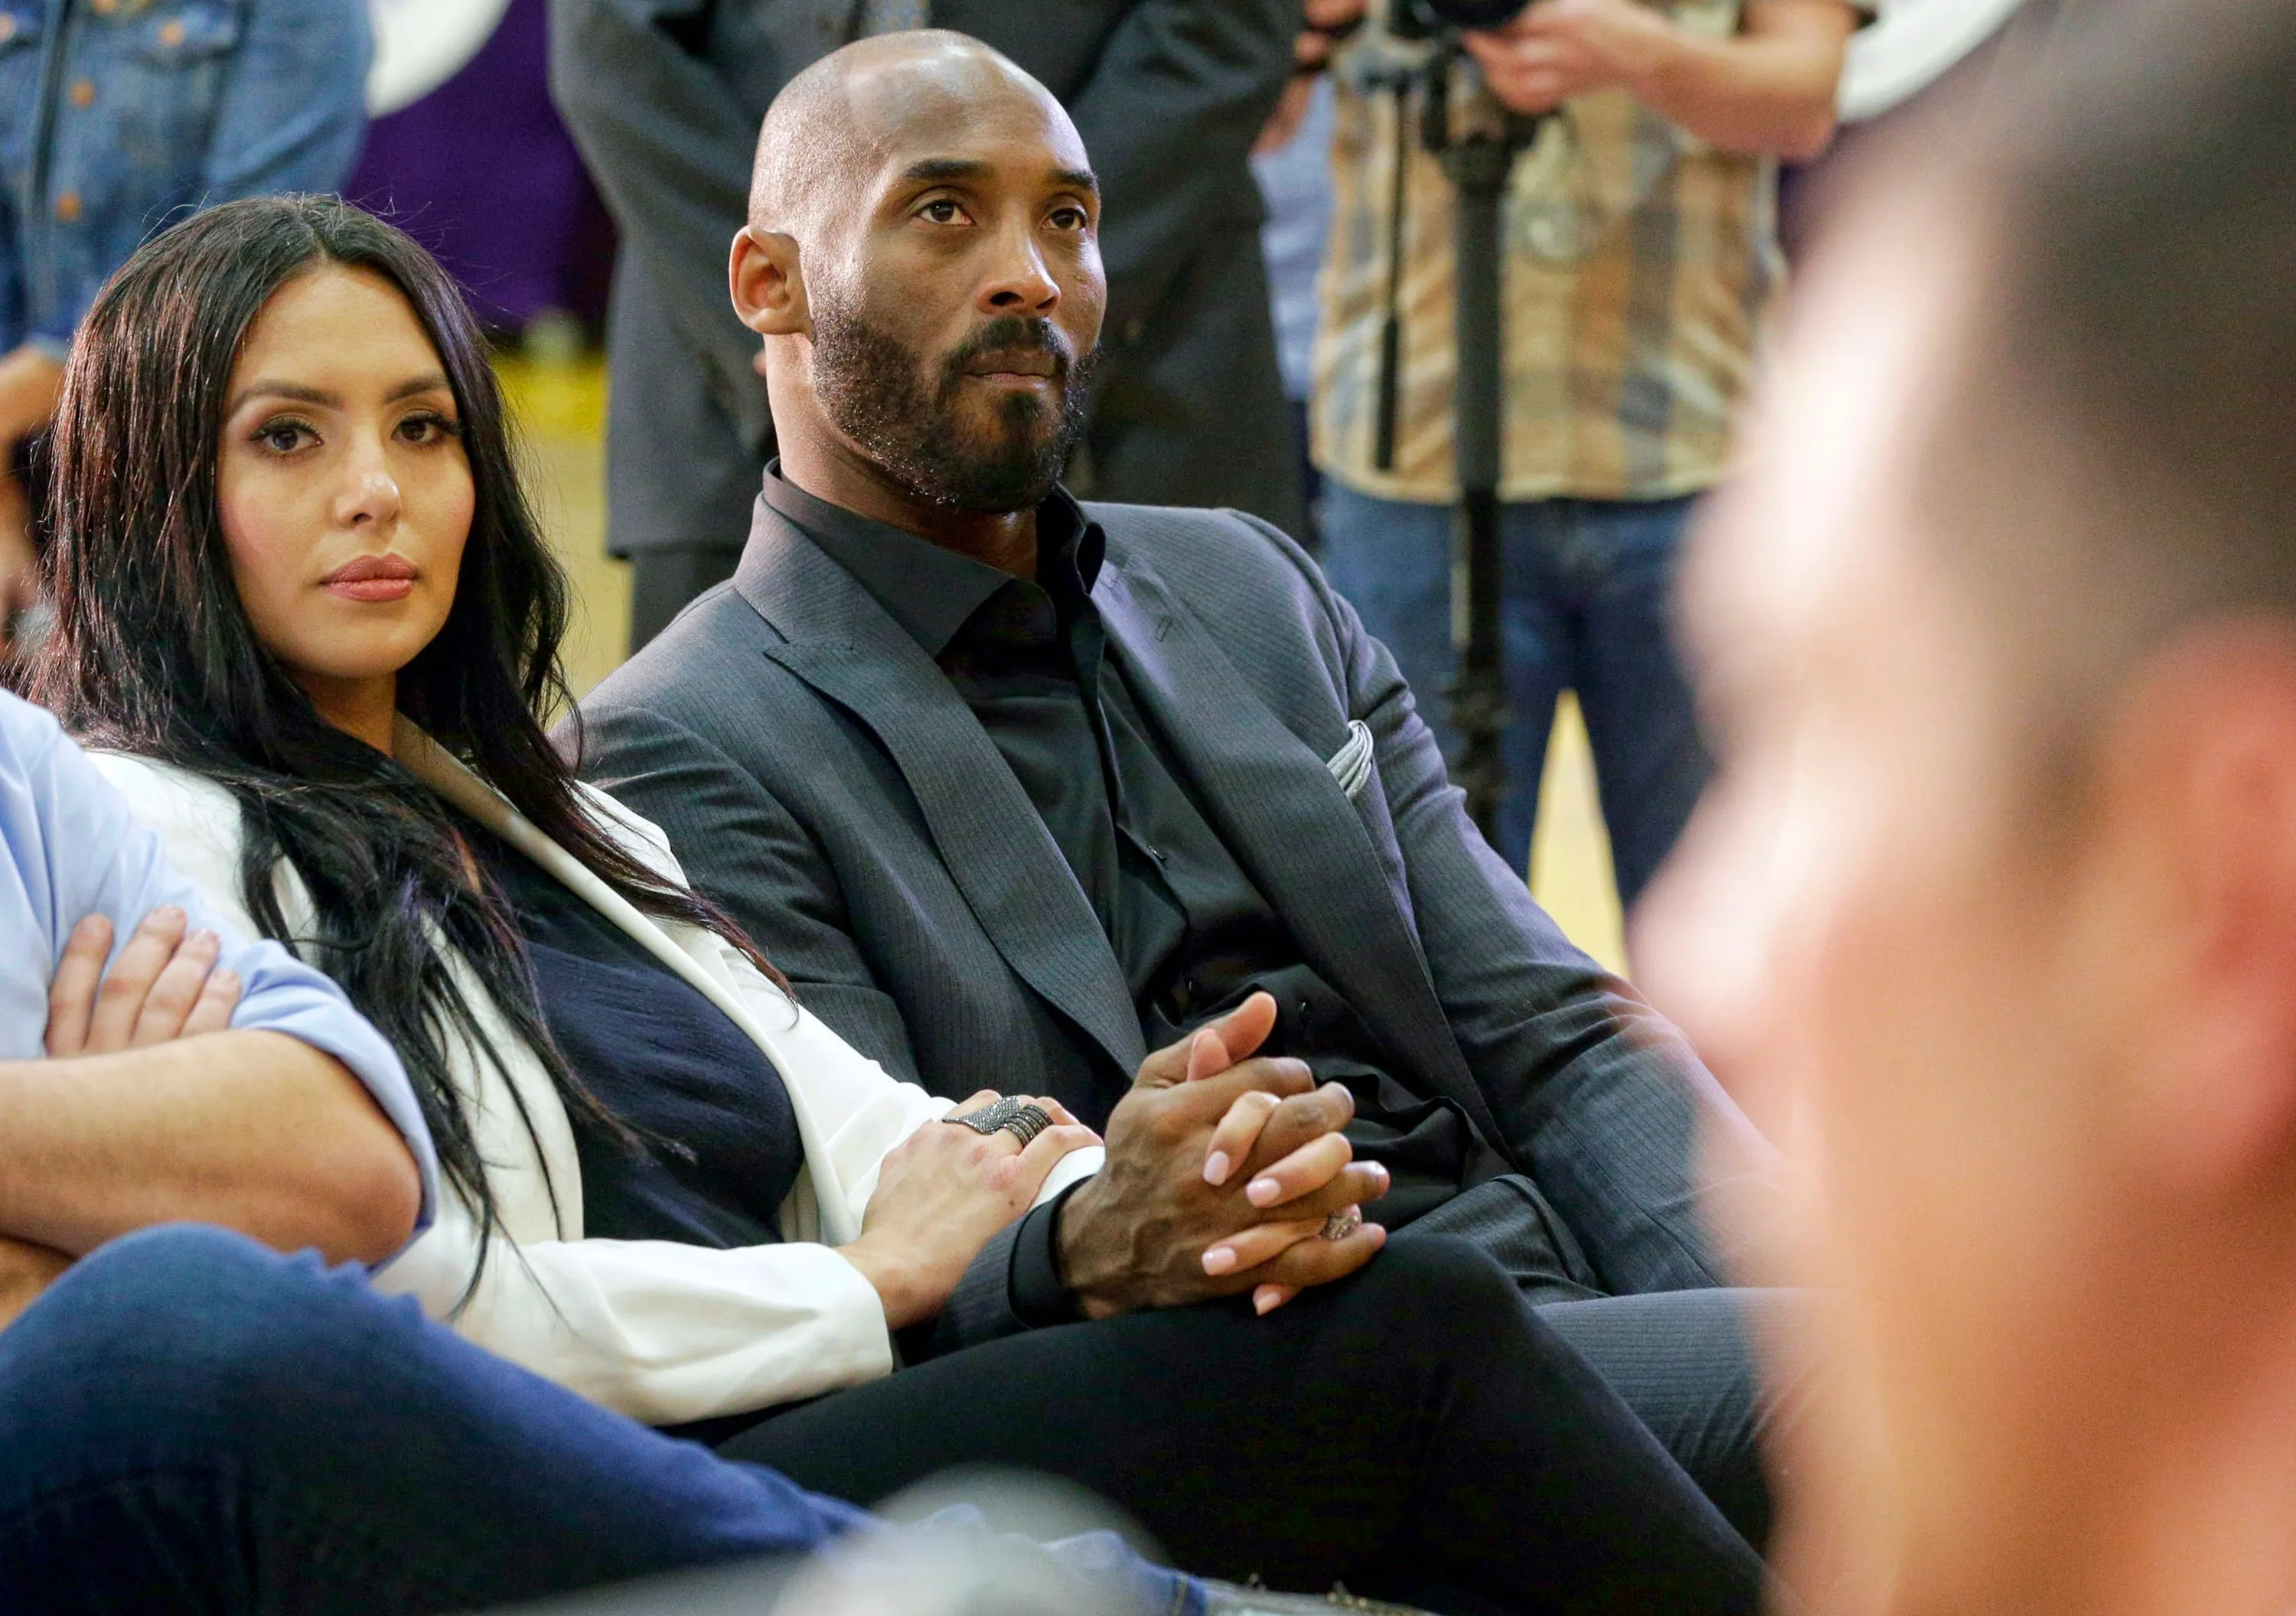 Kobe Bryant Cut From Film Festival After Protests Over